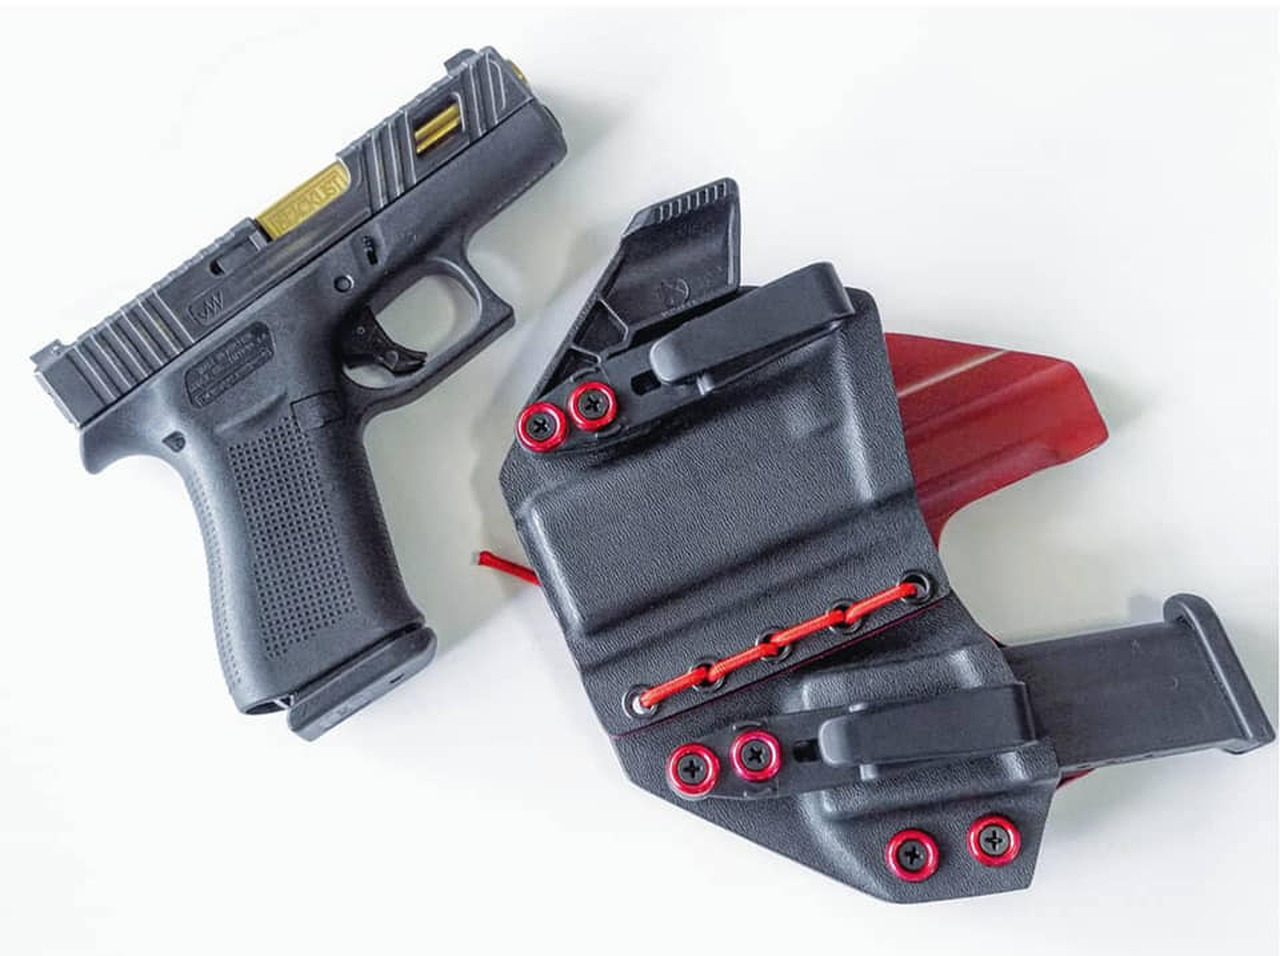 Glock 43 Appendix Carry Rig Holster with Shockcord